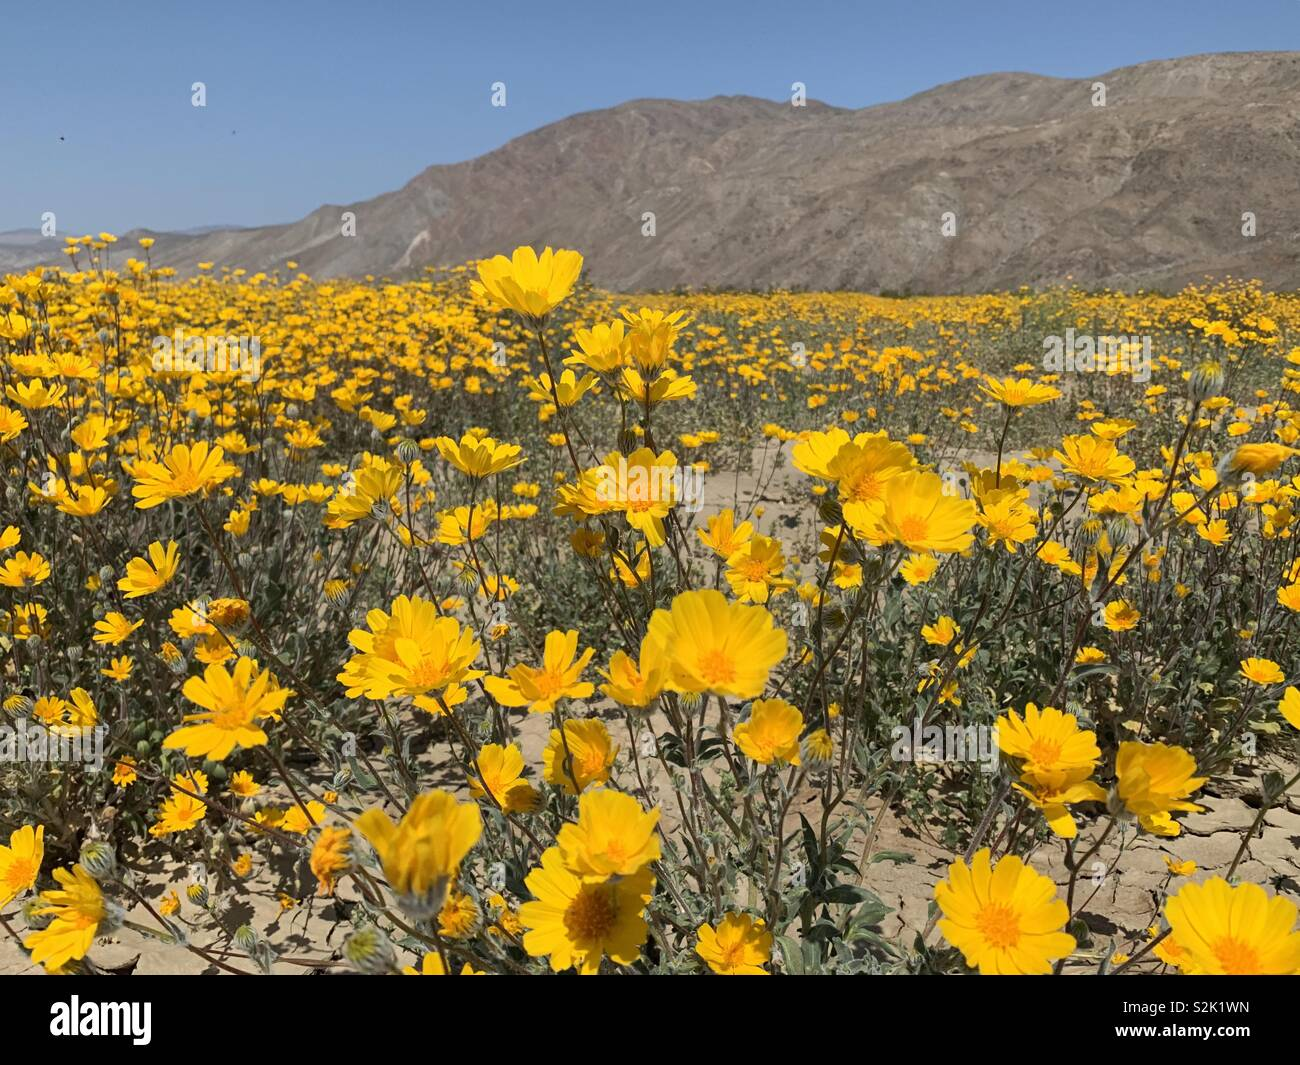 Yellow wild flowers in the desert in Anza Borrego state park near San Diego, California. The flowers are part of the super bloom of March 2019. - Stock Image